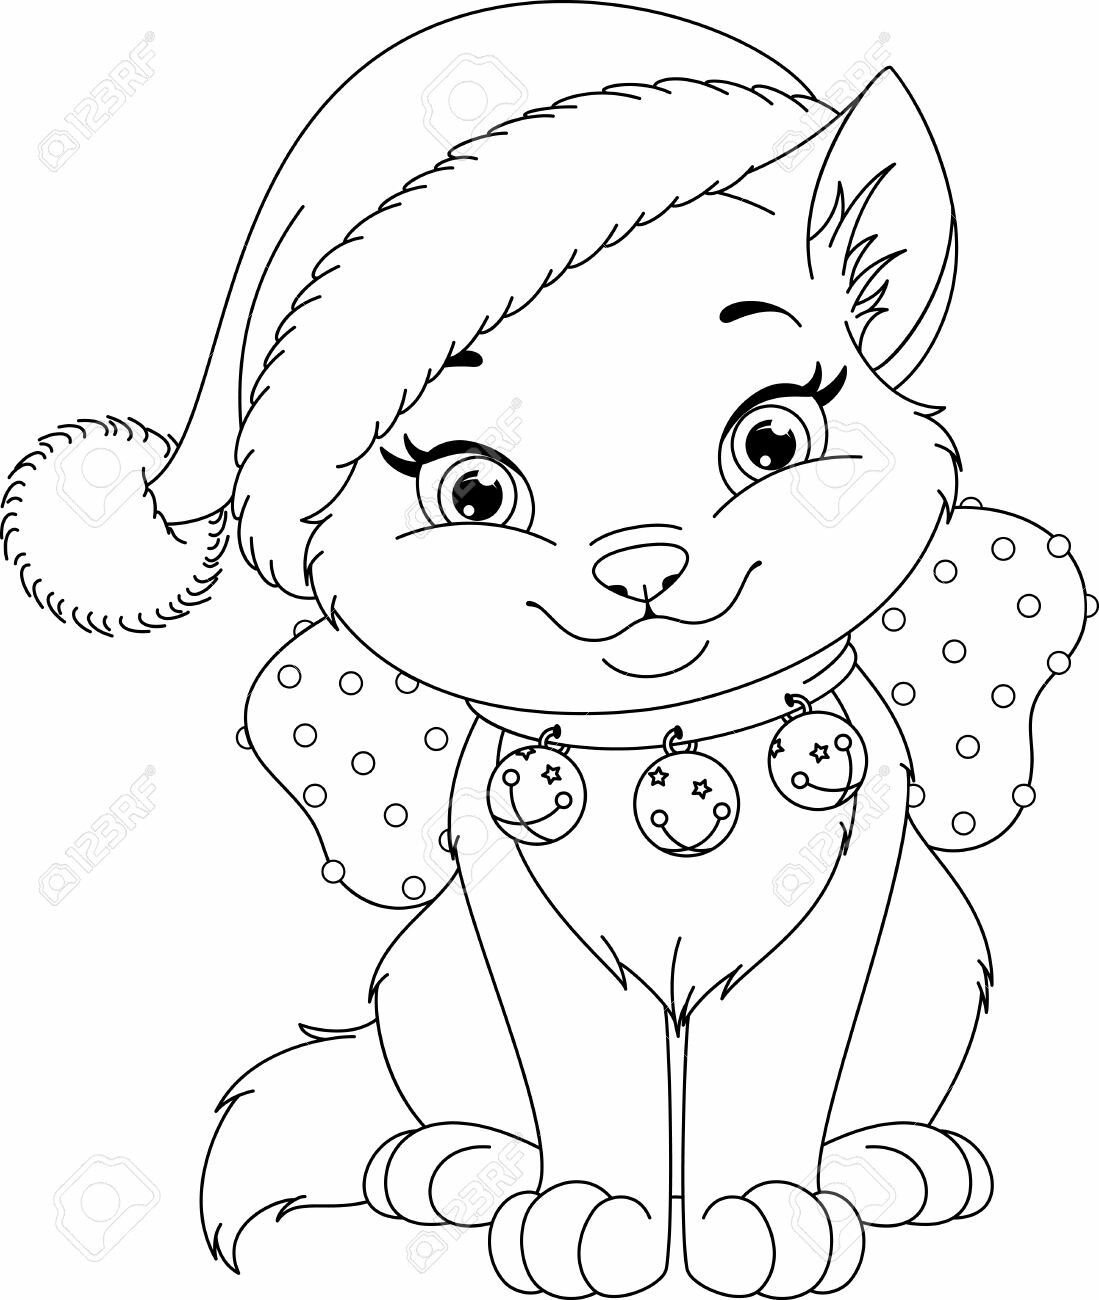 Christmas Coloring Pages Kitten With Pin By Danielle S On Dessins Colori Pinterest